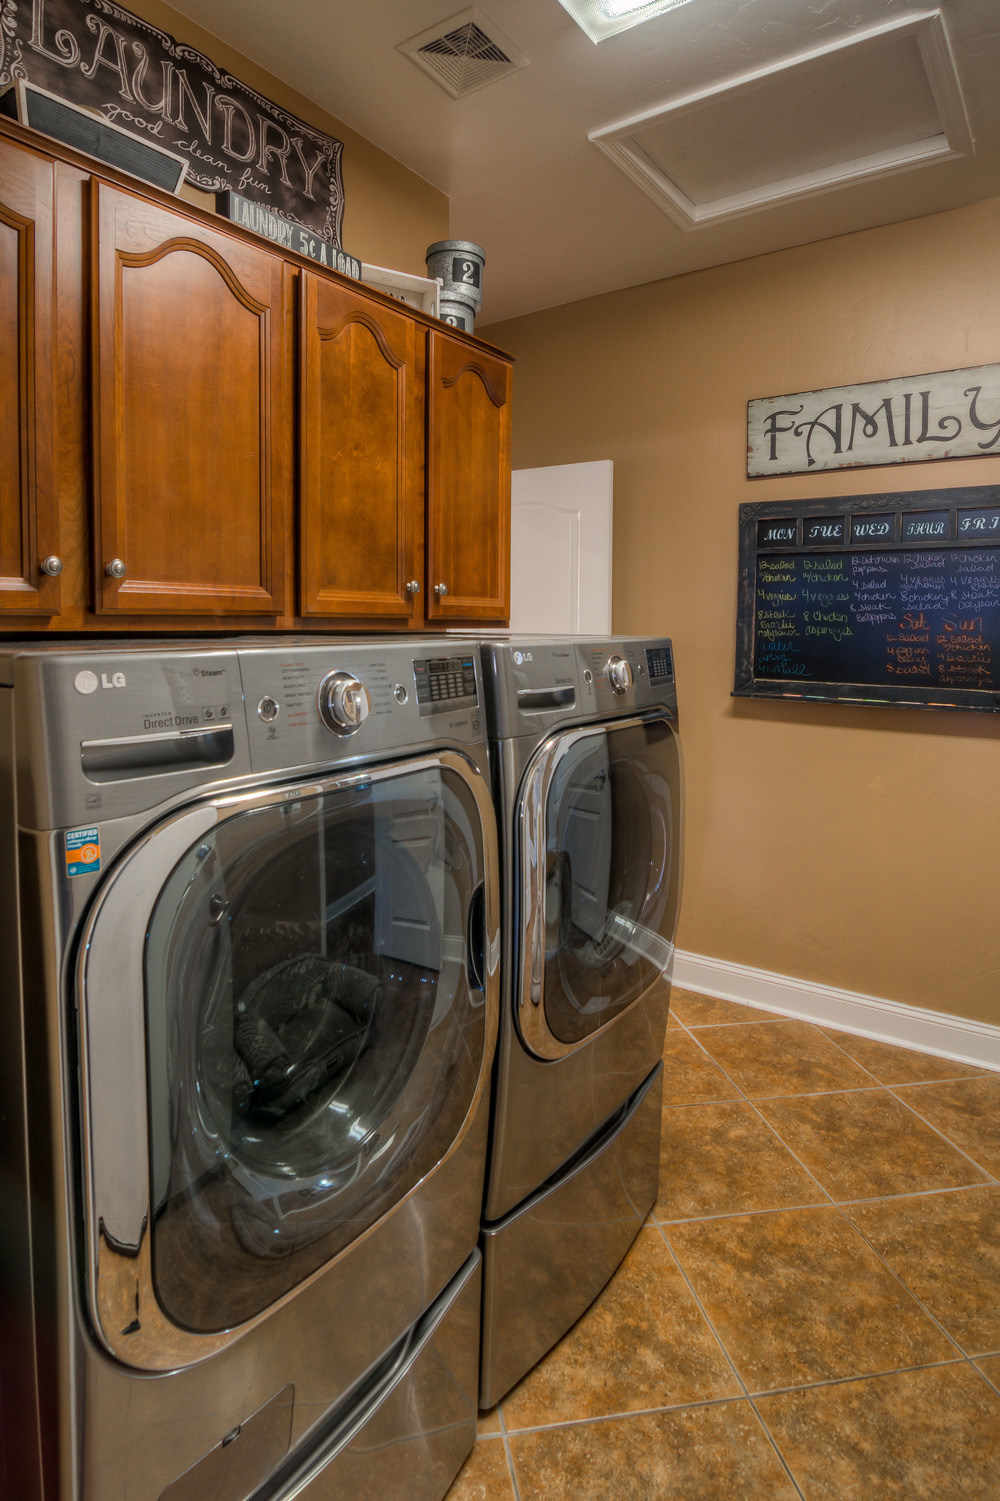 19 Laundry Room photo b.jpg